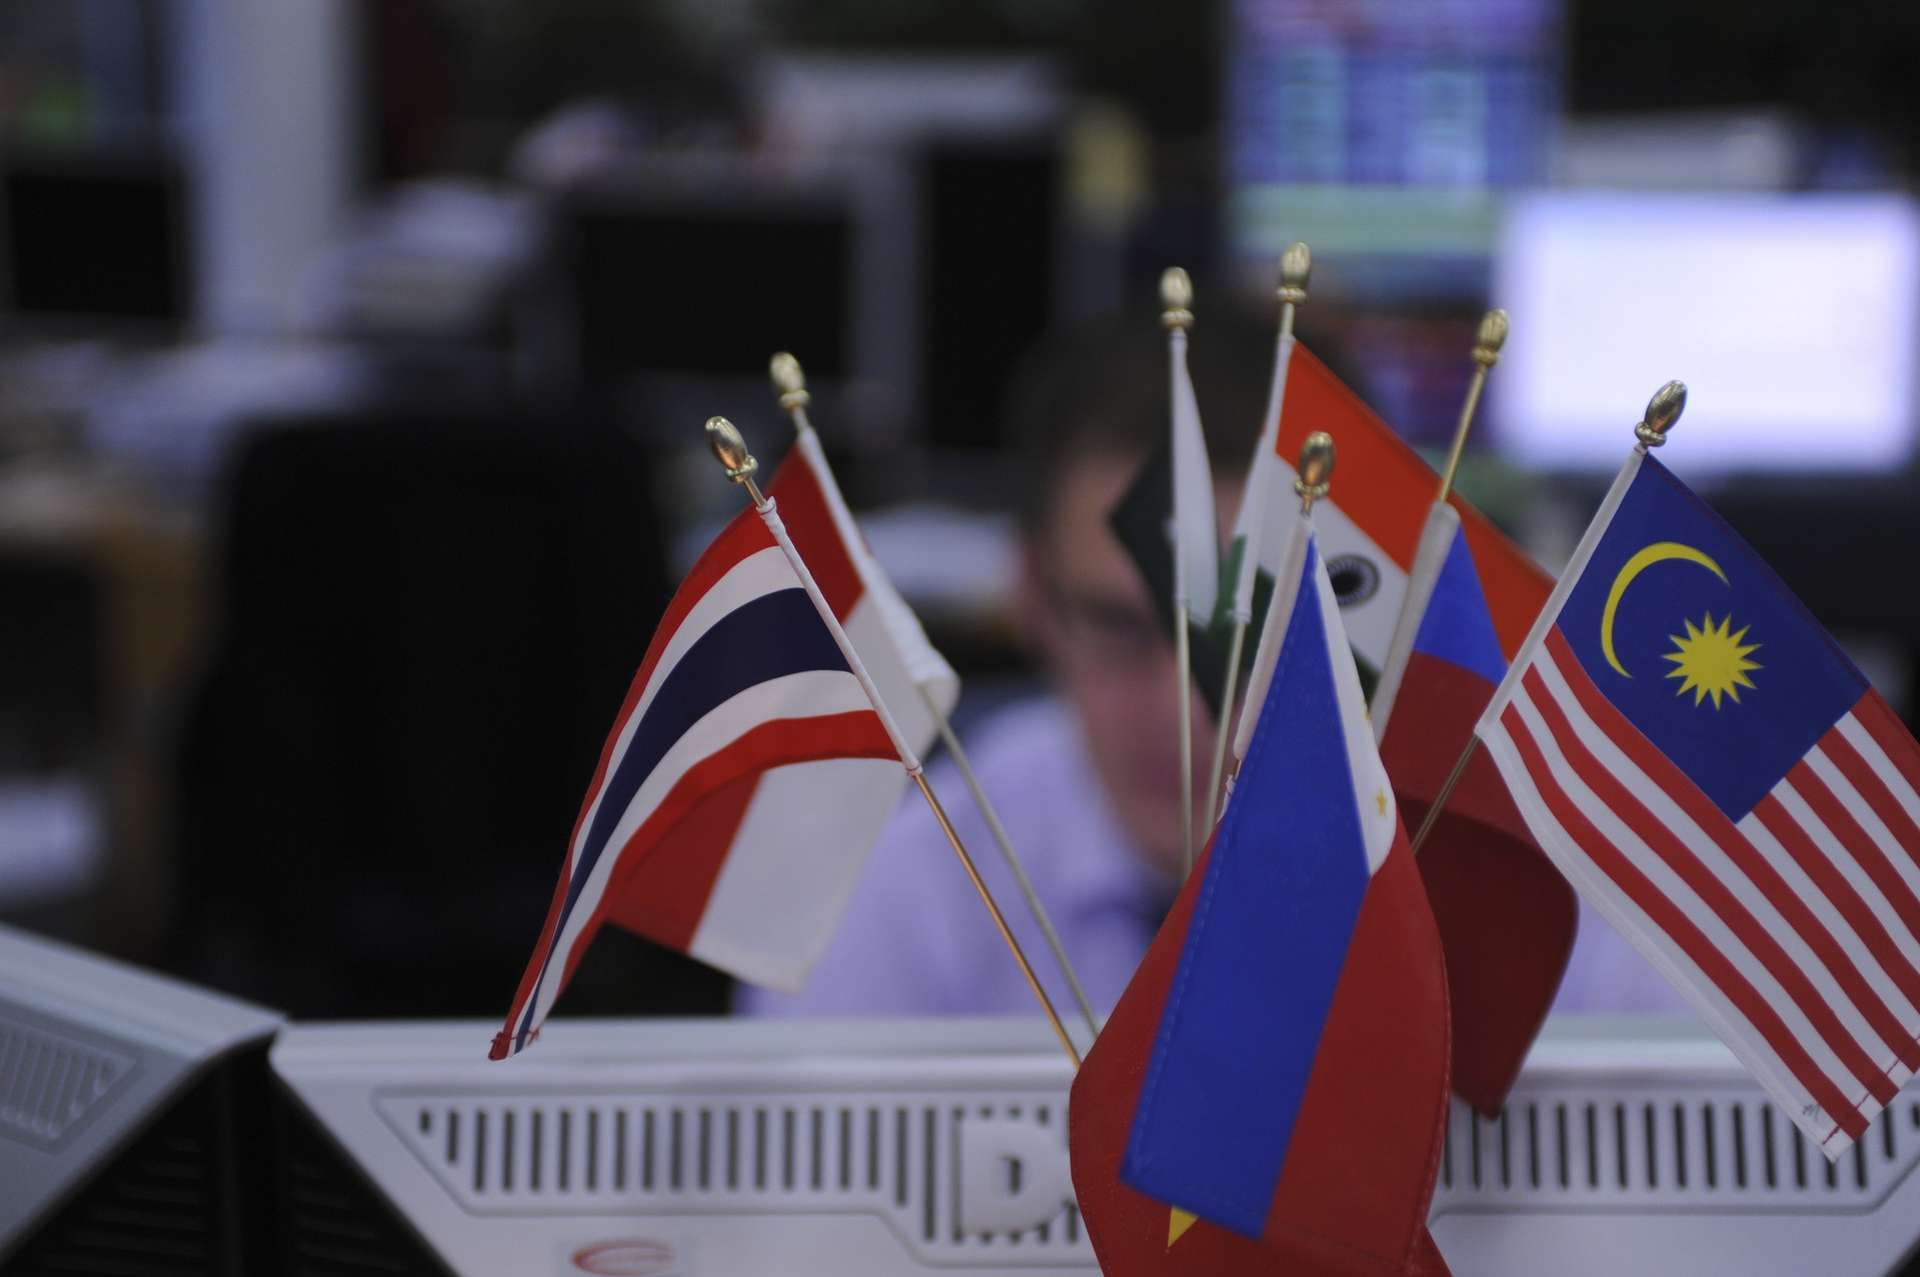 Flags on computer